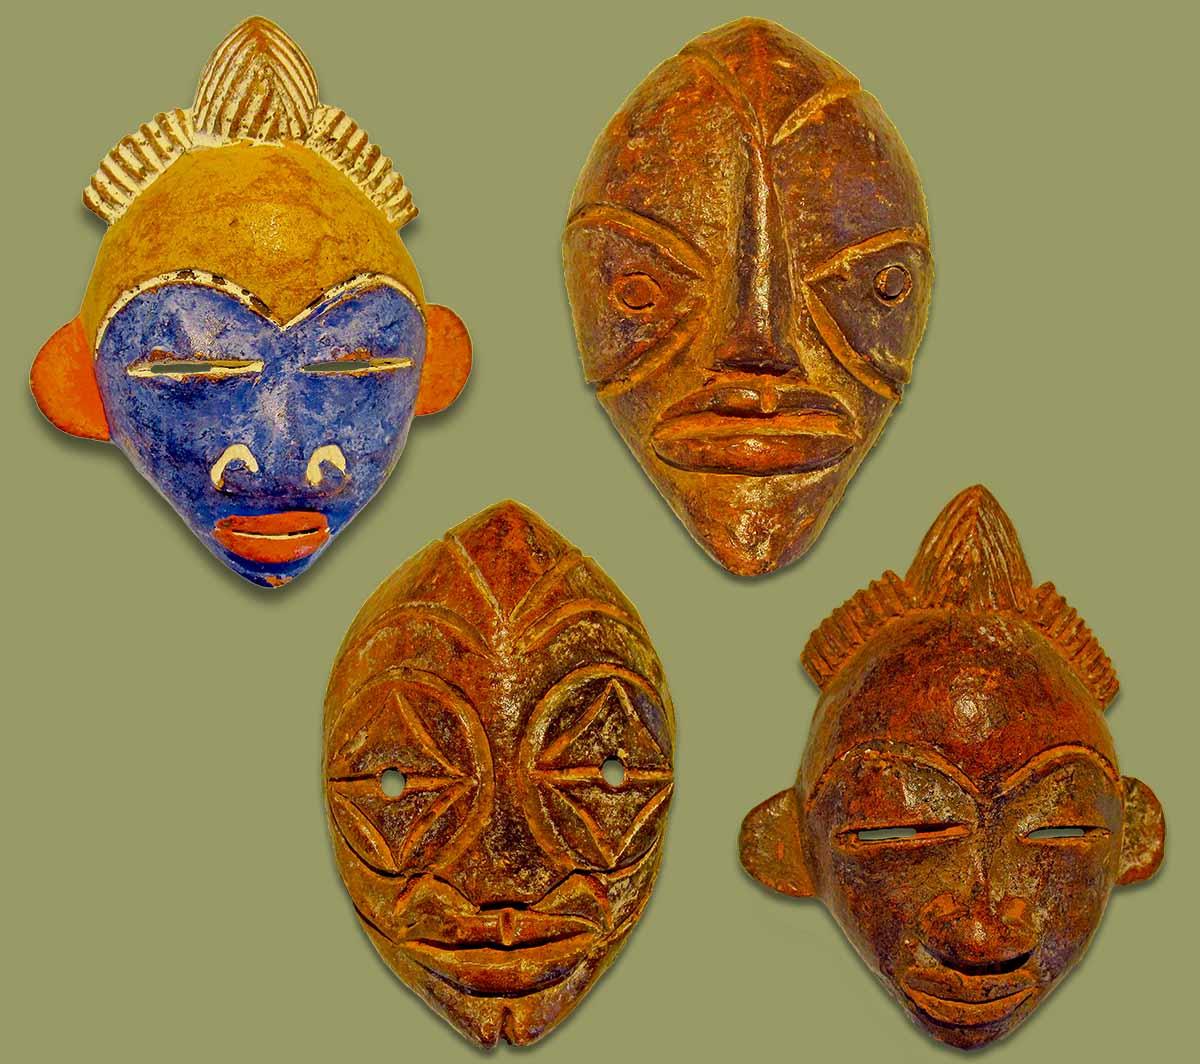 African Passport Masks Mixed